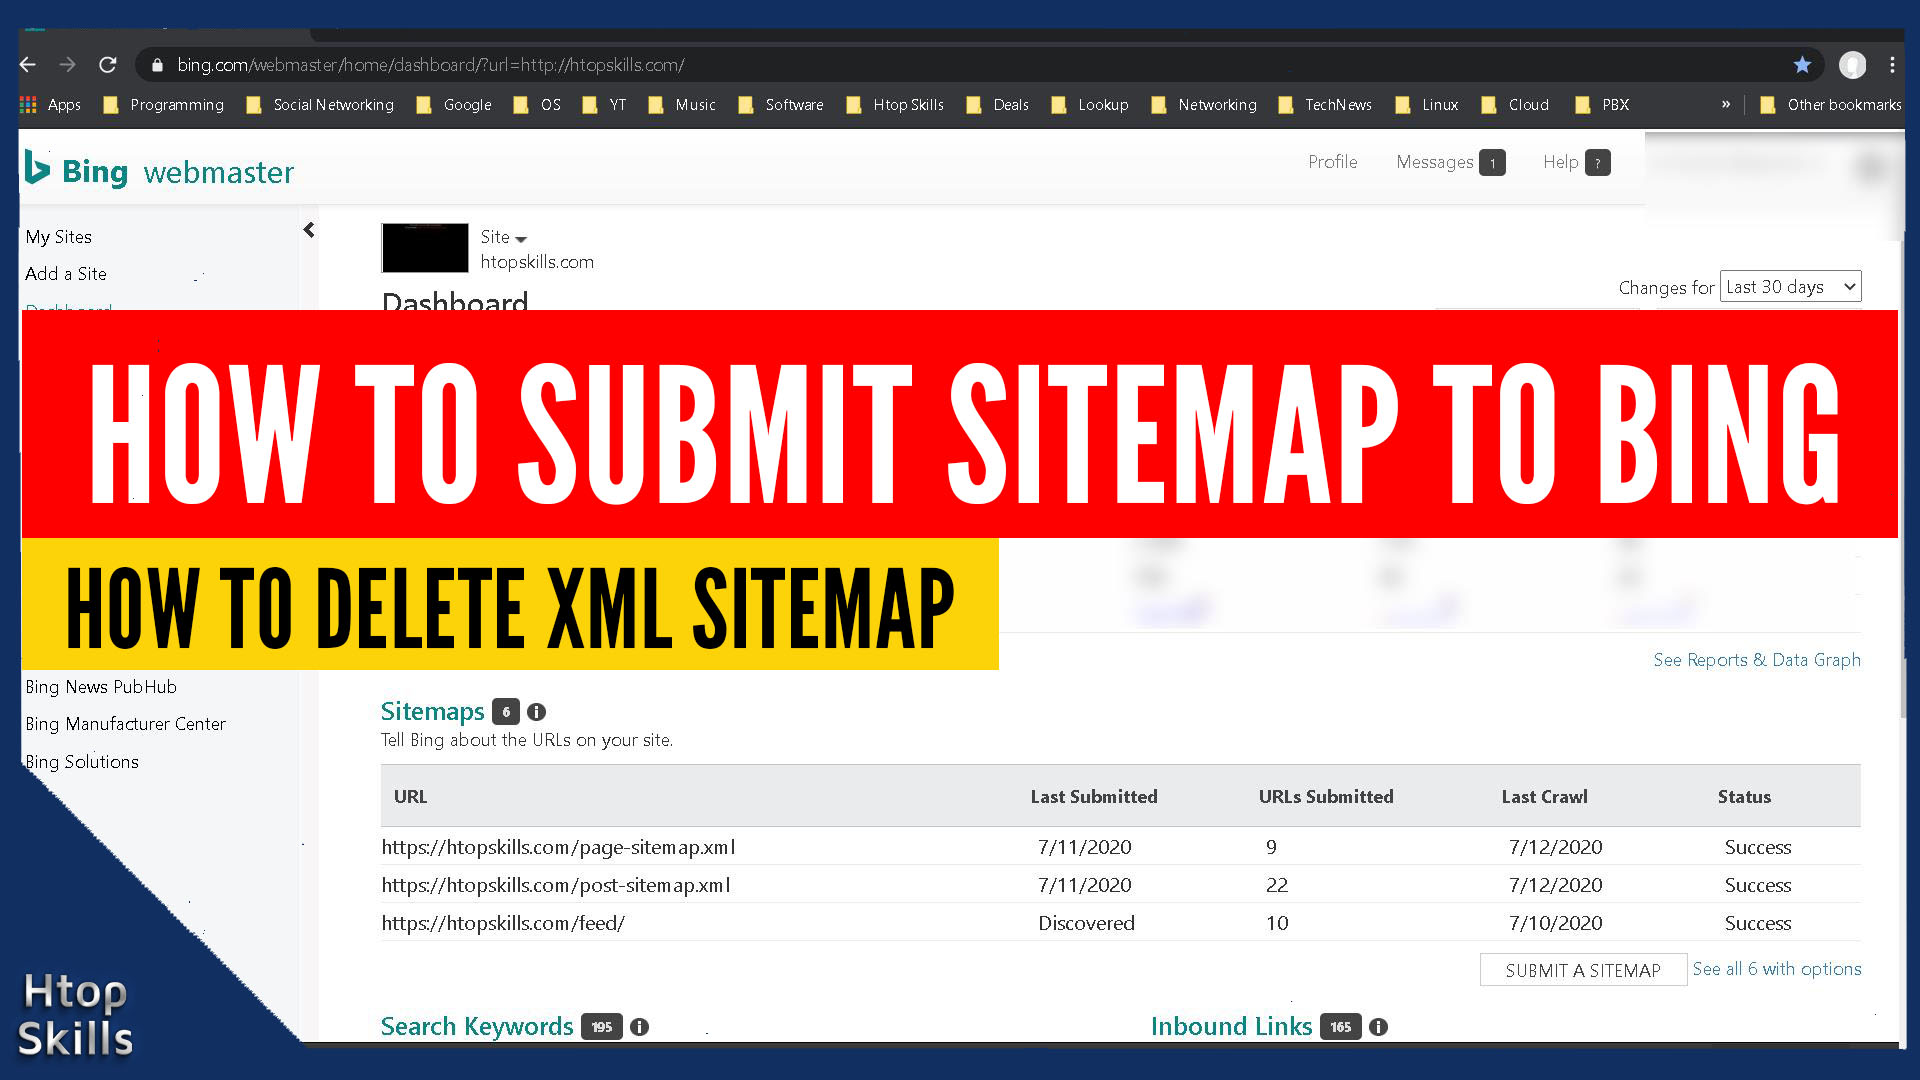 Thumbnail with Bing Webmaster Tools sitemap page